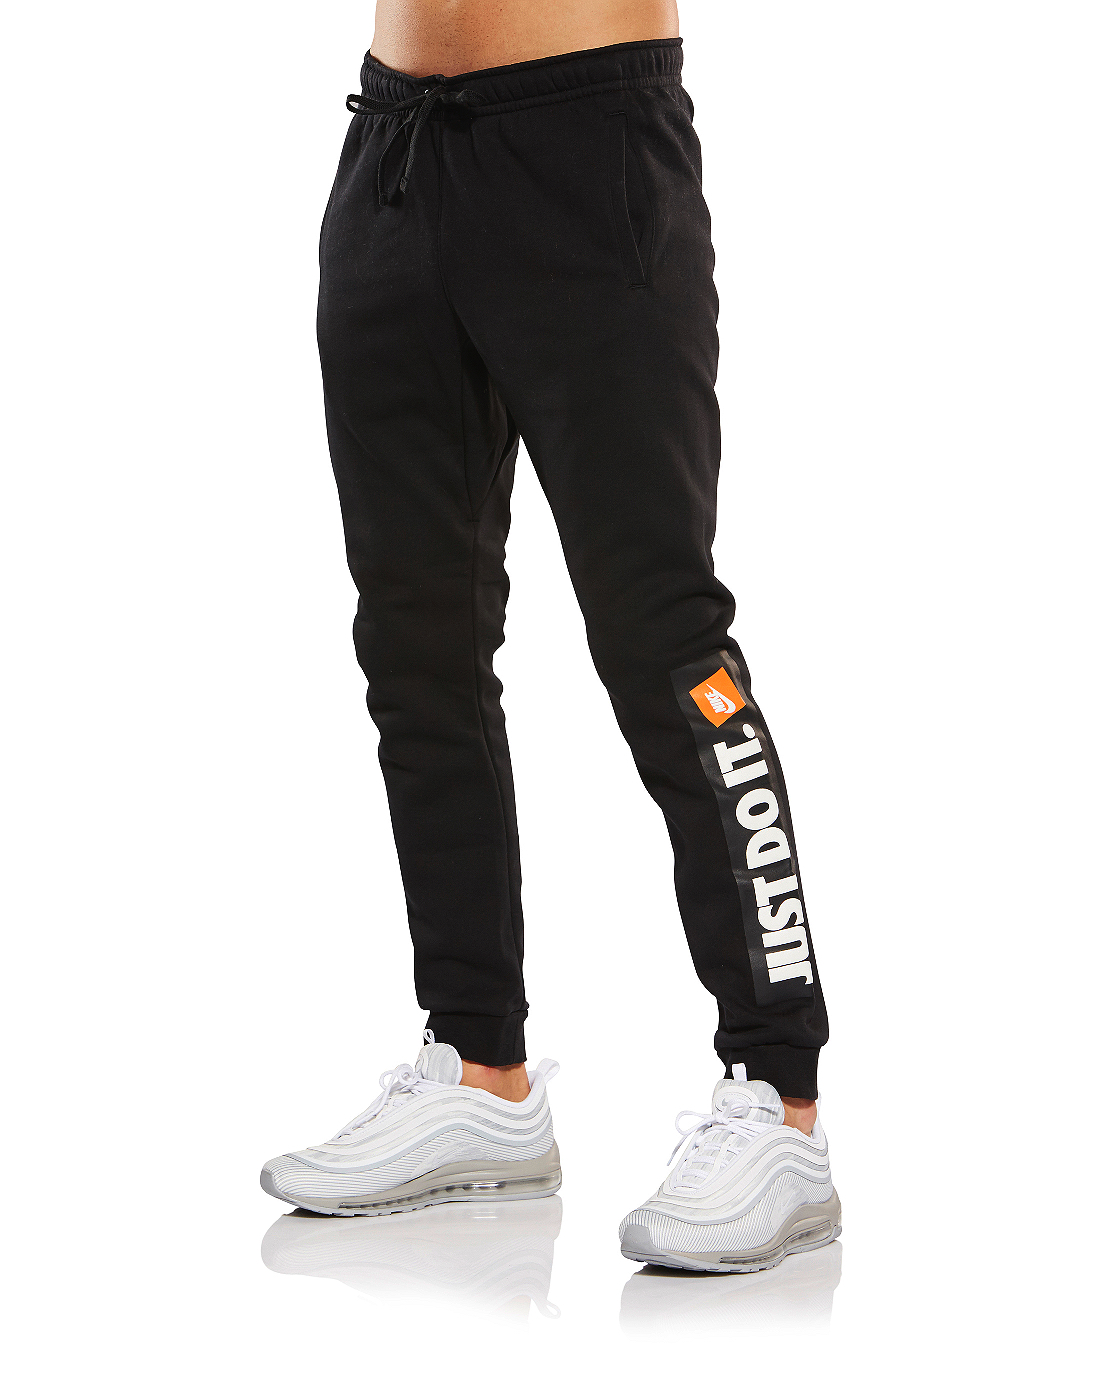 f8645a4ef7be Men s Black Nike  Just Do It  Joggers